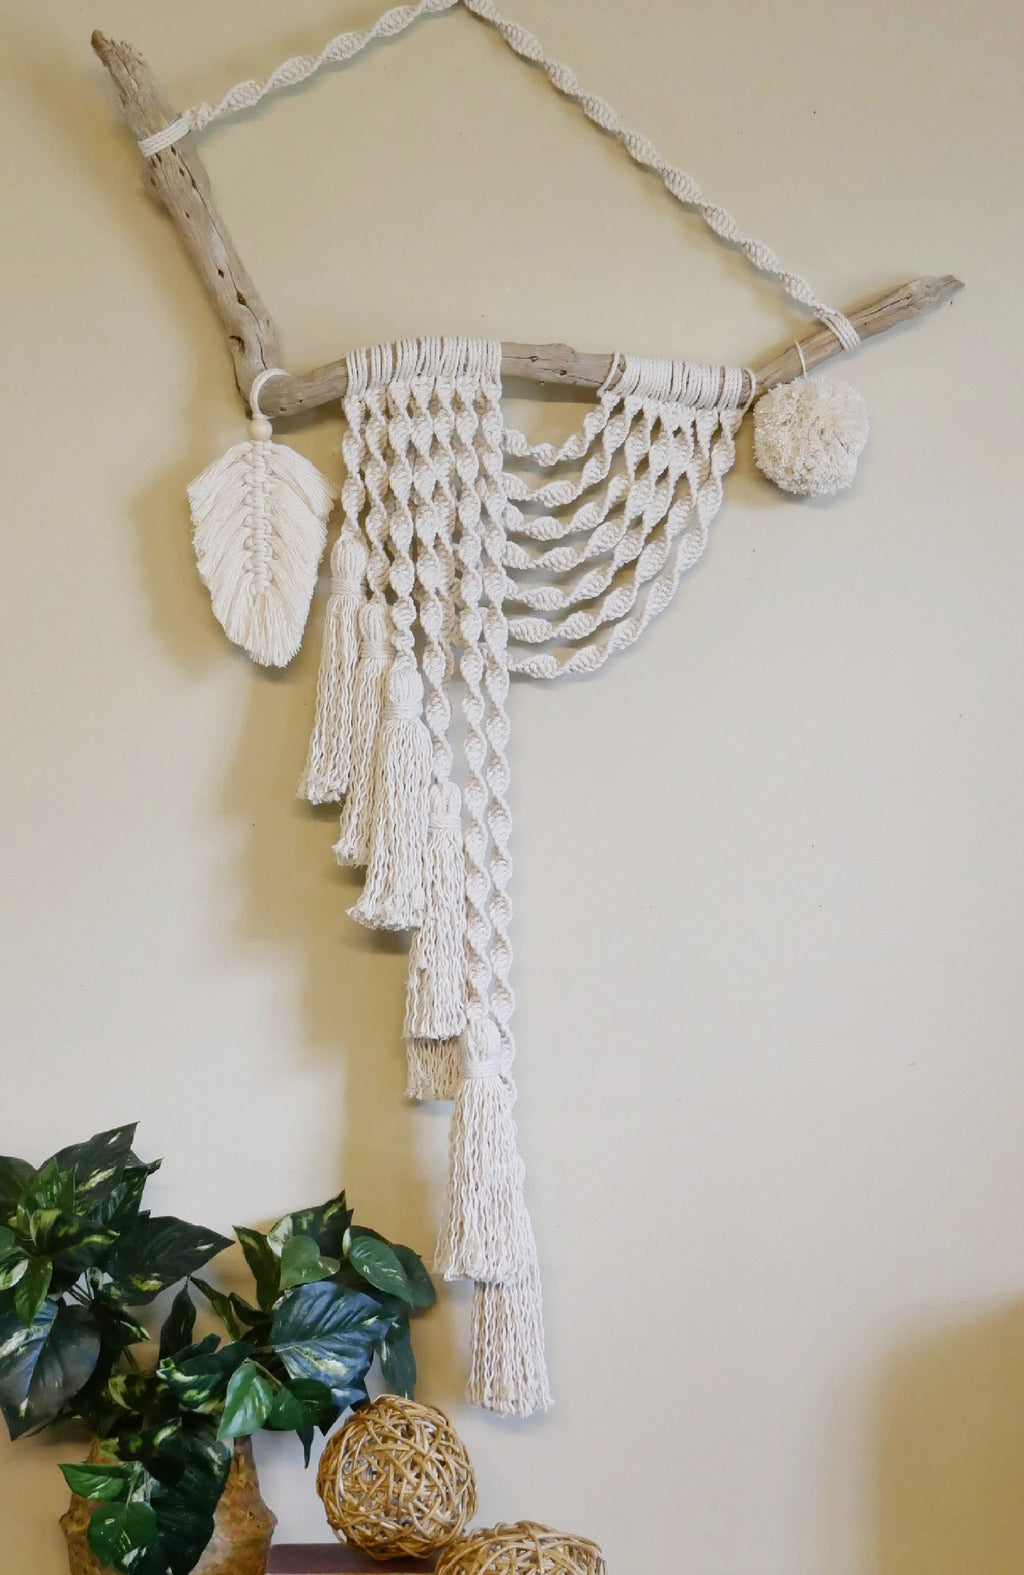 Twisted-Macrame-Nchanted-Gifts